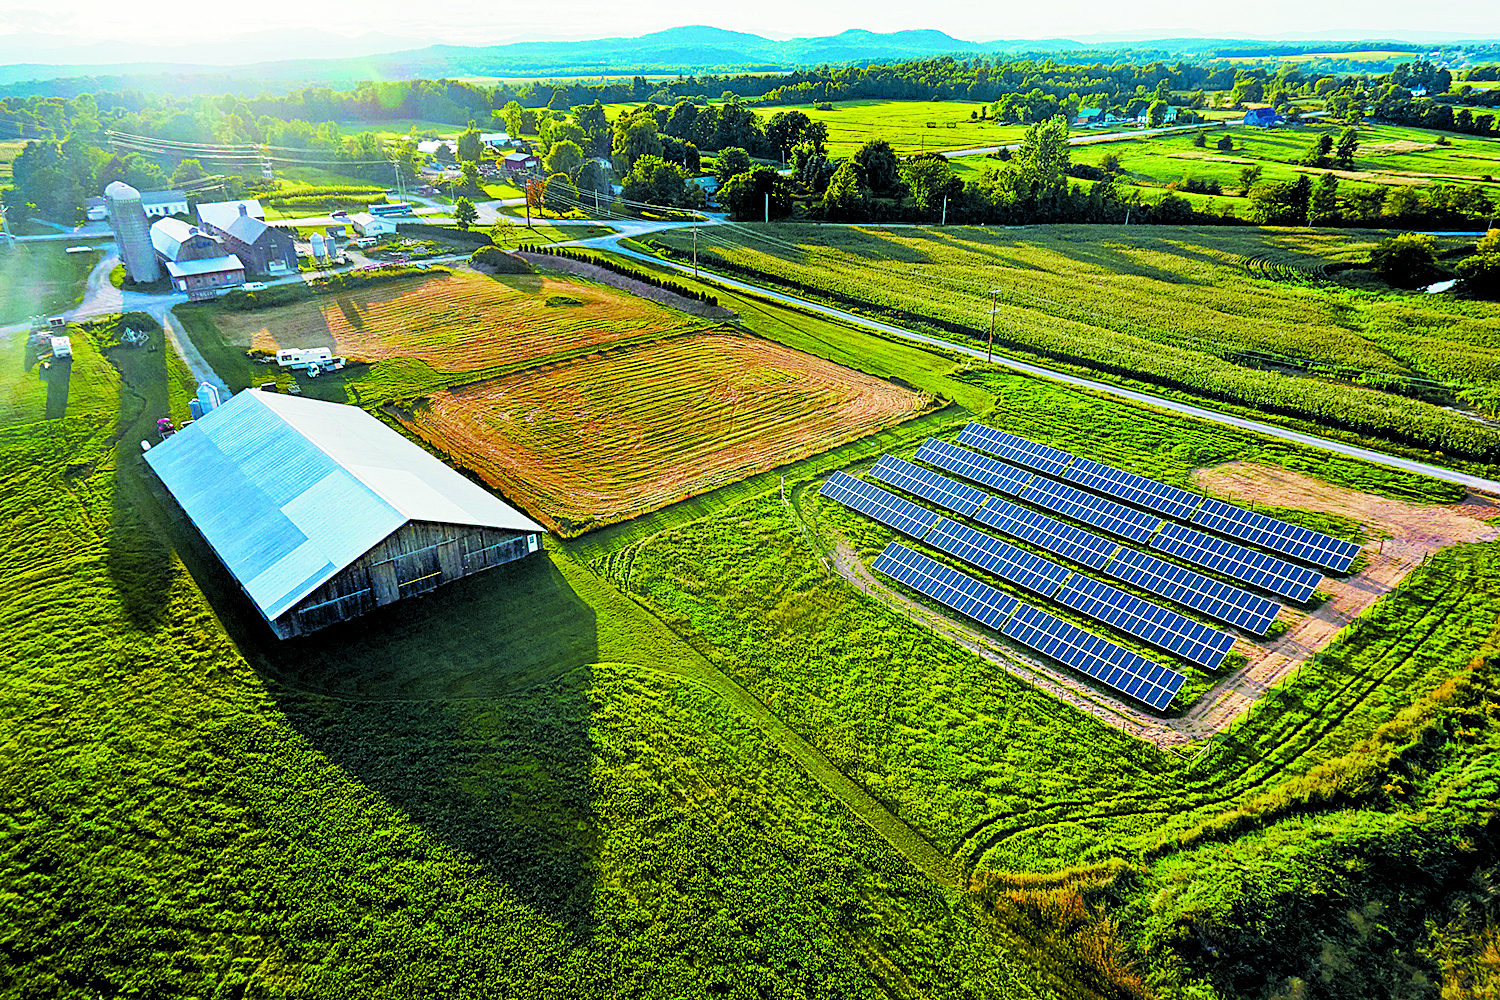 Encore Renewable Energy's Misty Knoll Farm project – creating value on the least agriculturally usable portion of the property.